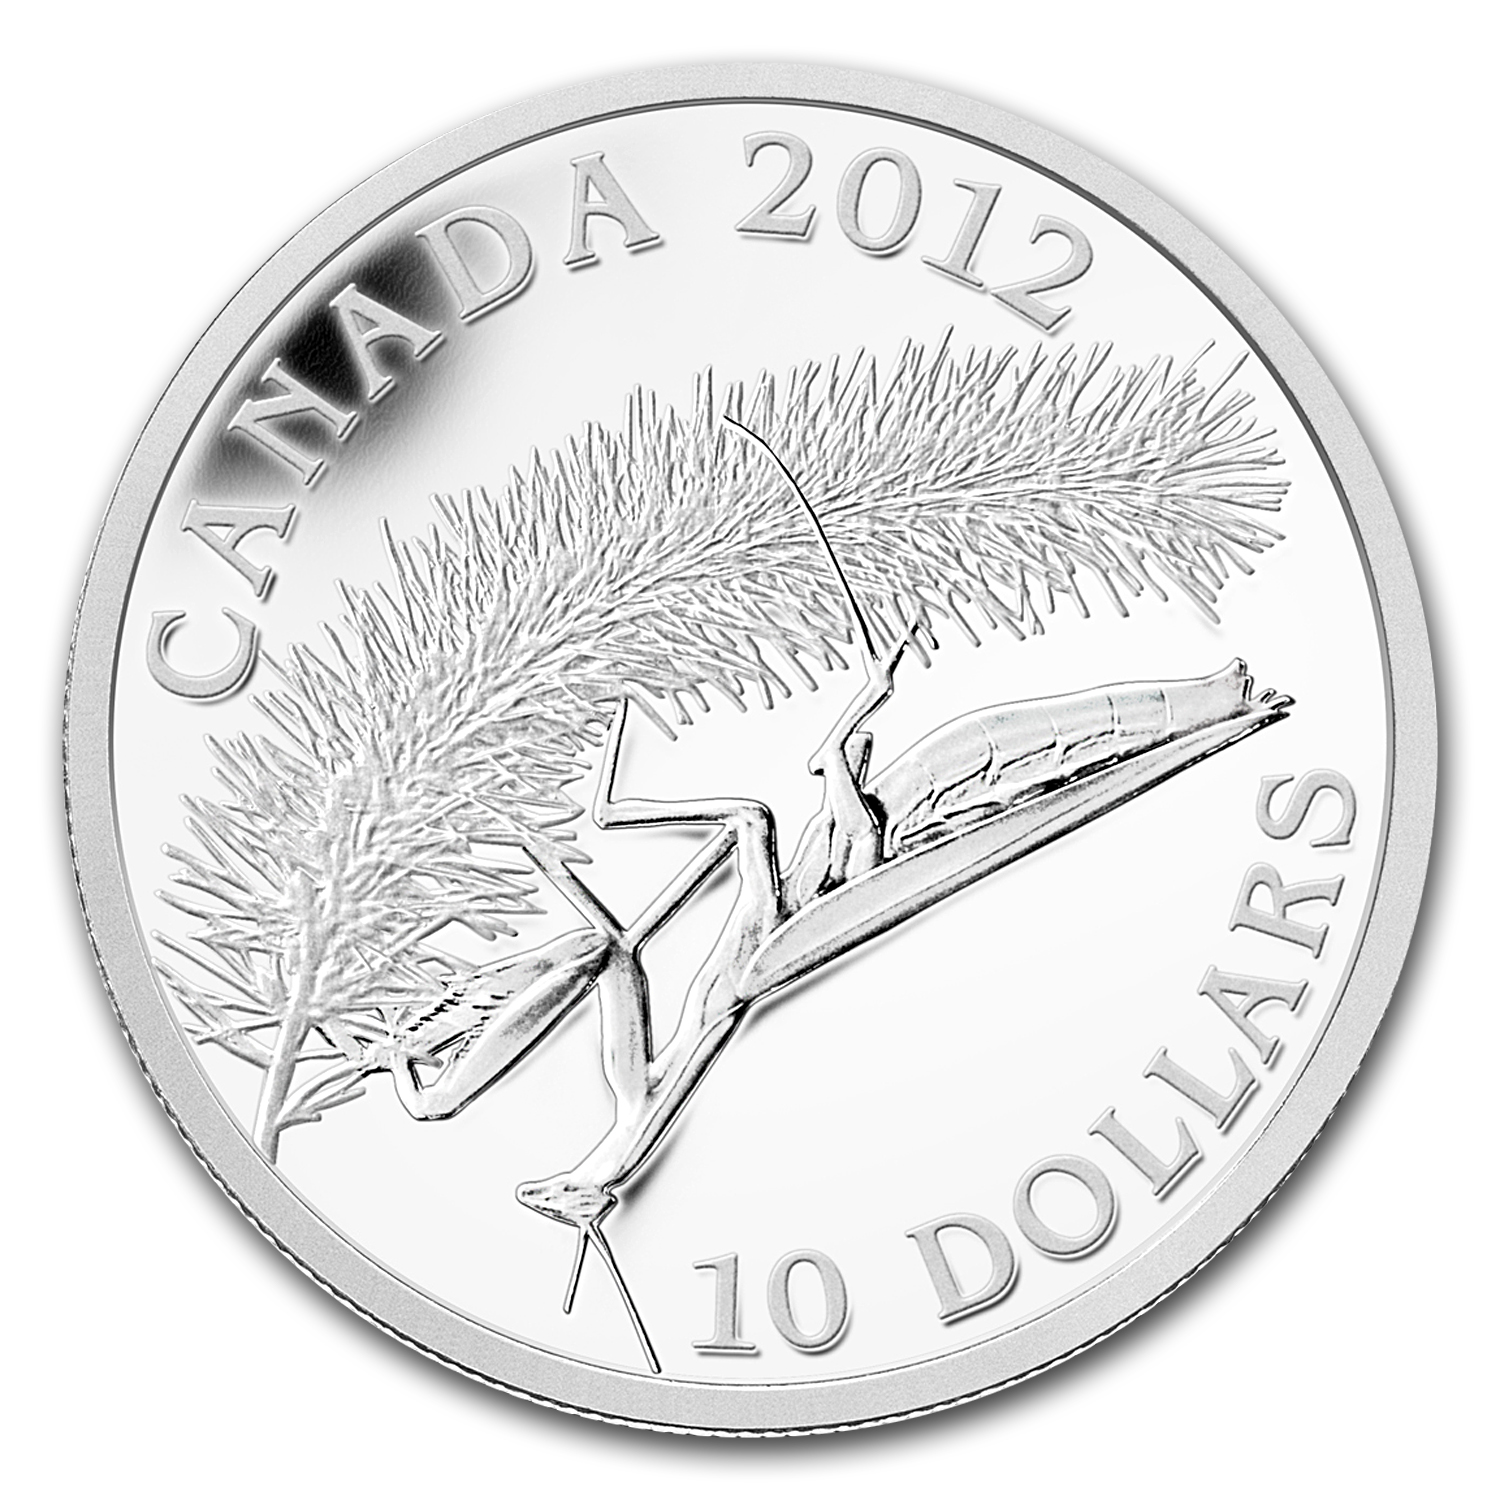 2012 $10 1/2 oz Silver Canadian Geographic Photo - Praying Mantis